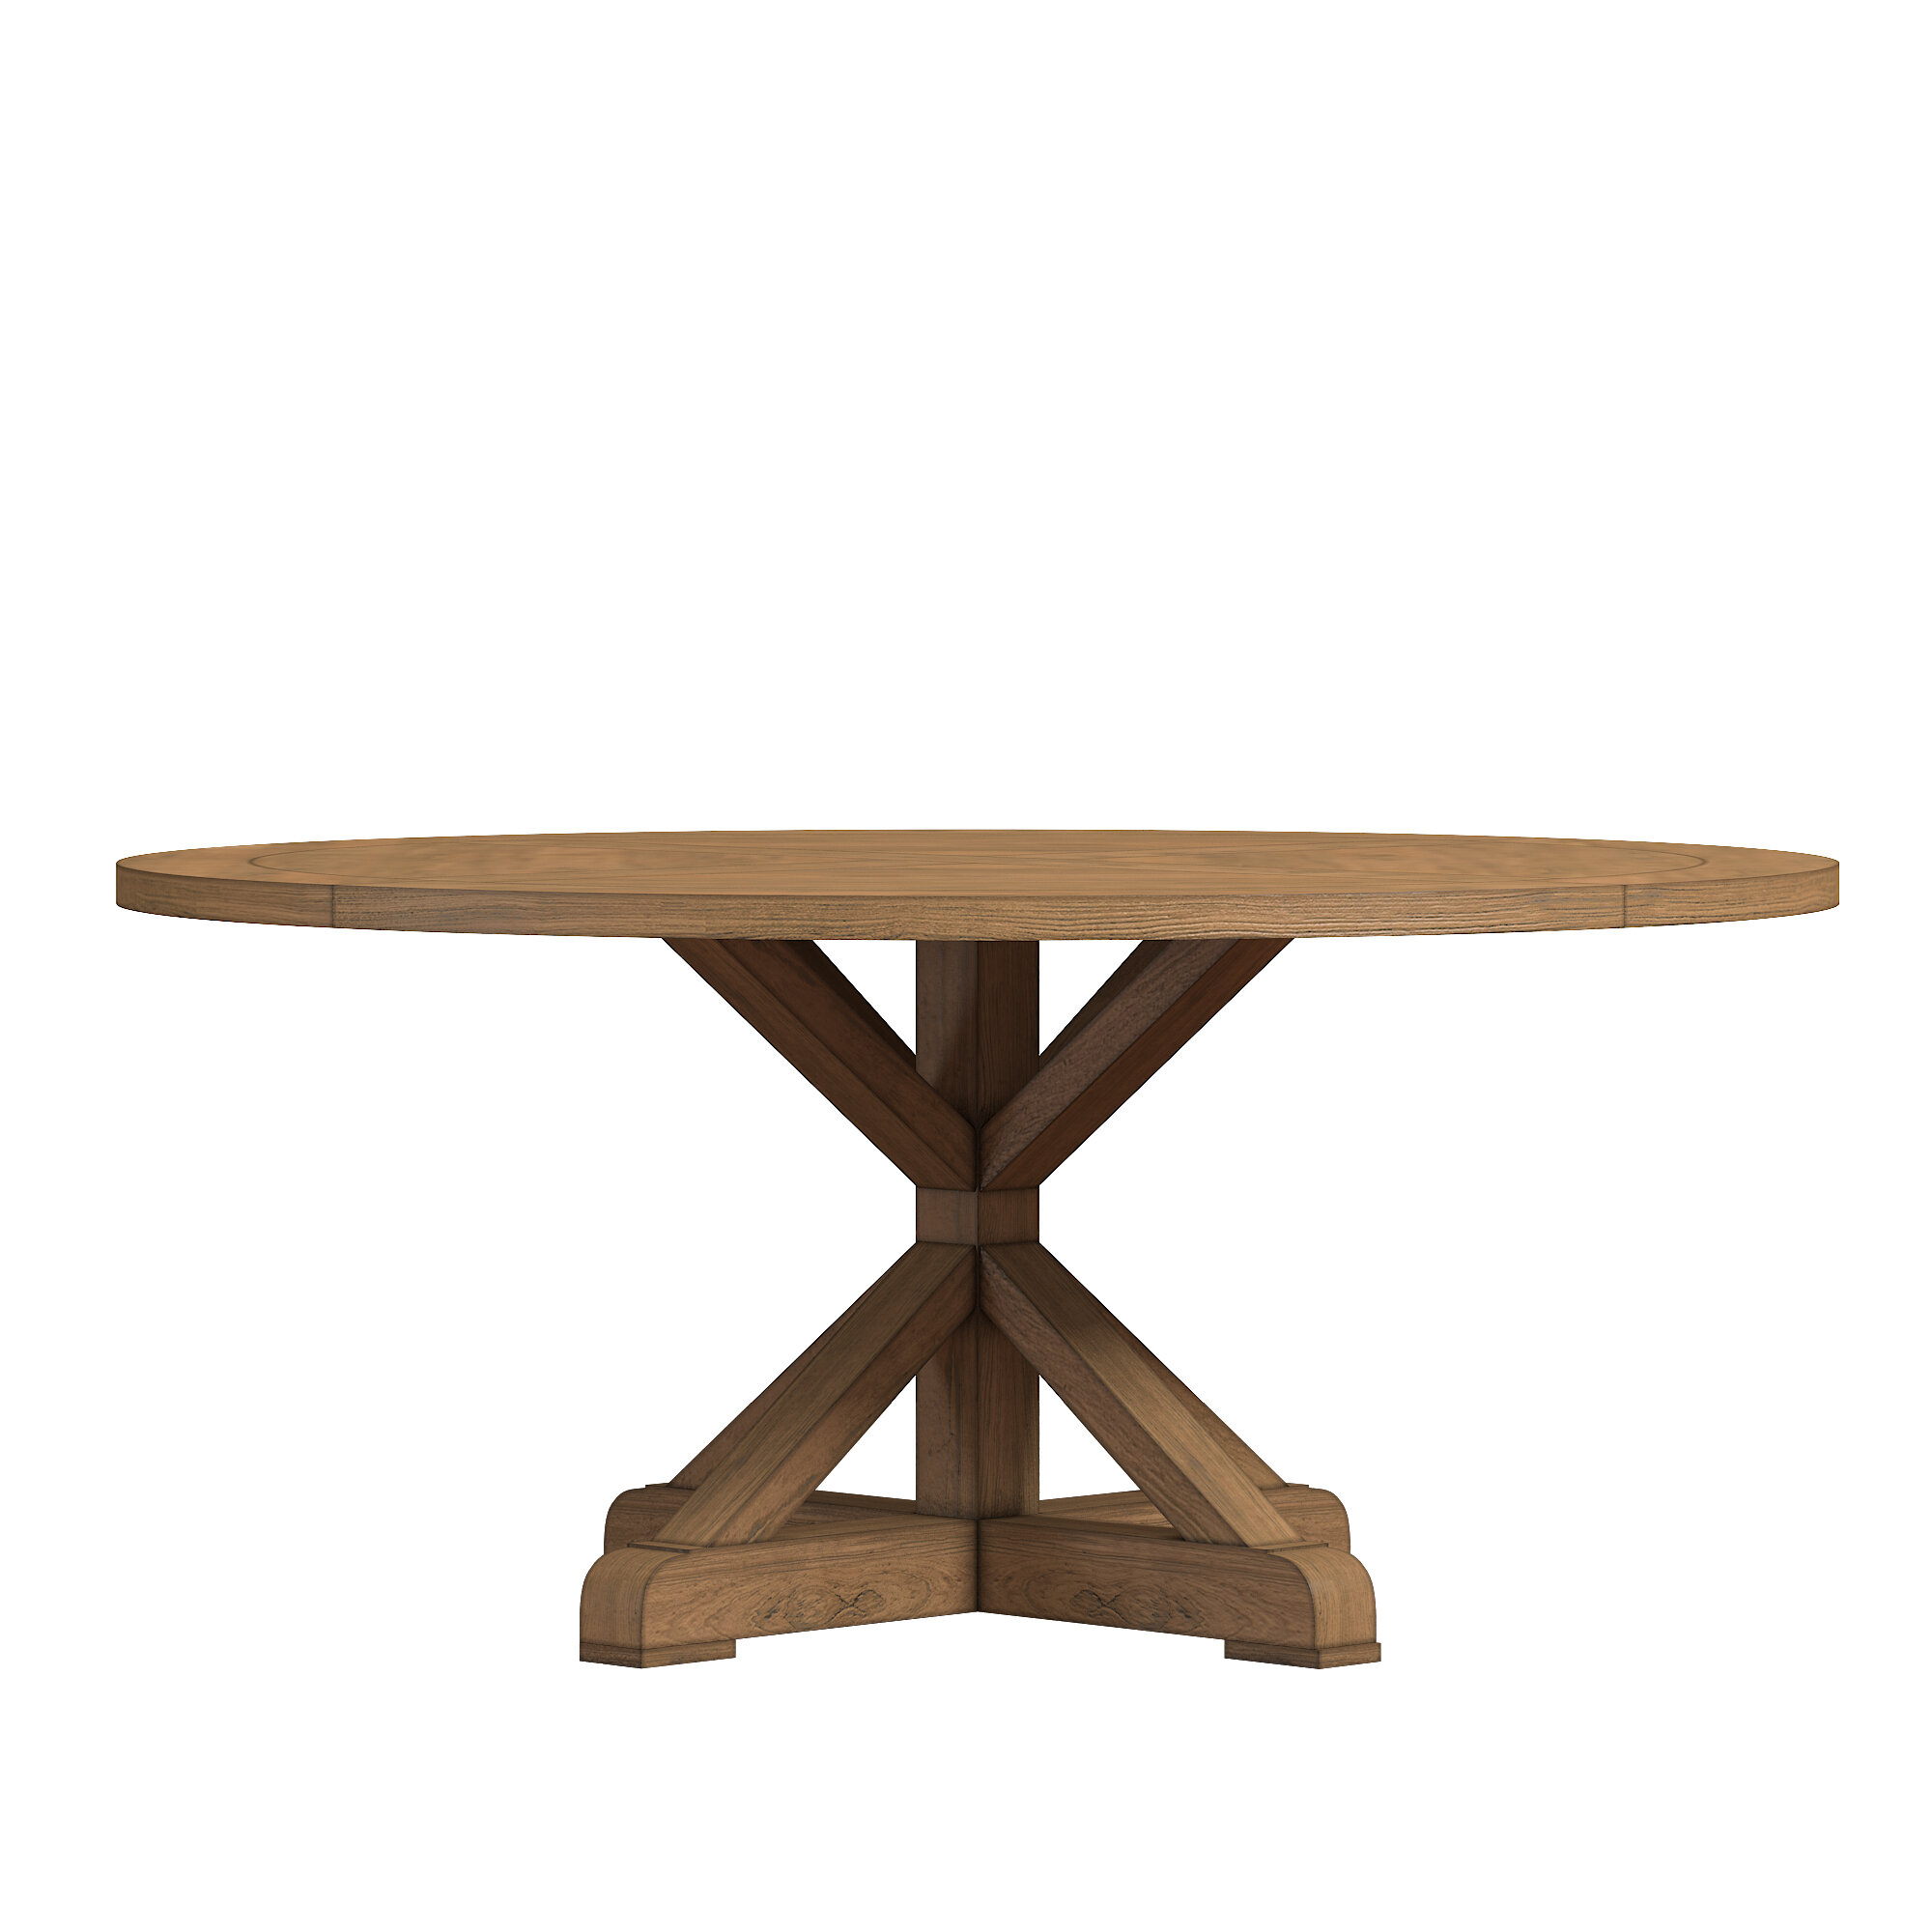 peralta round rustic dining table - Round Wood Dining Table